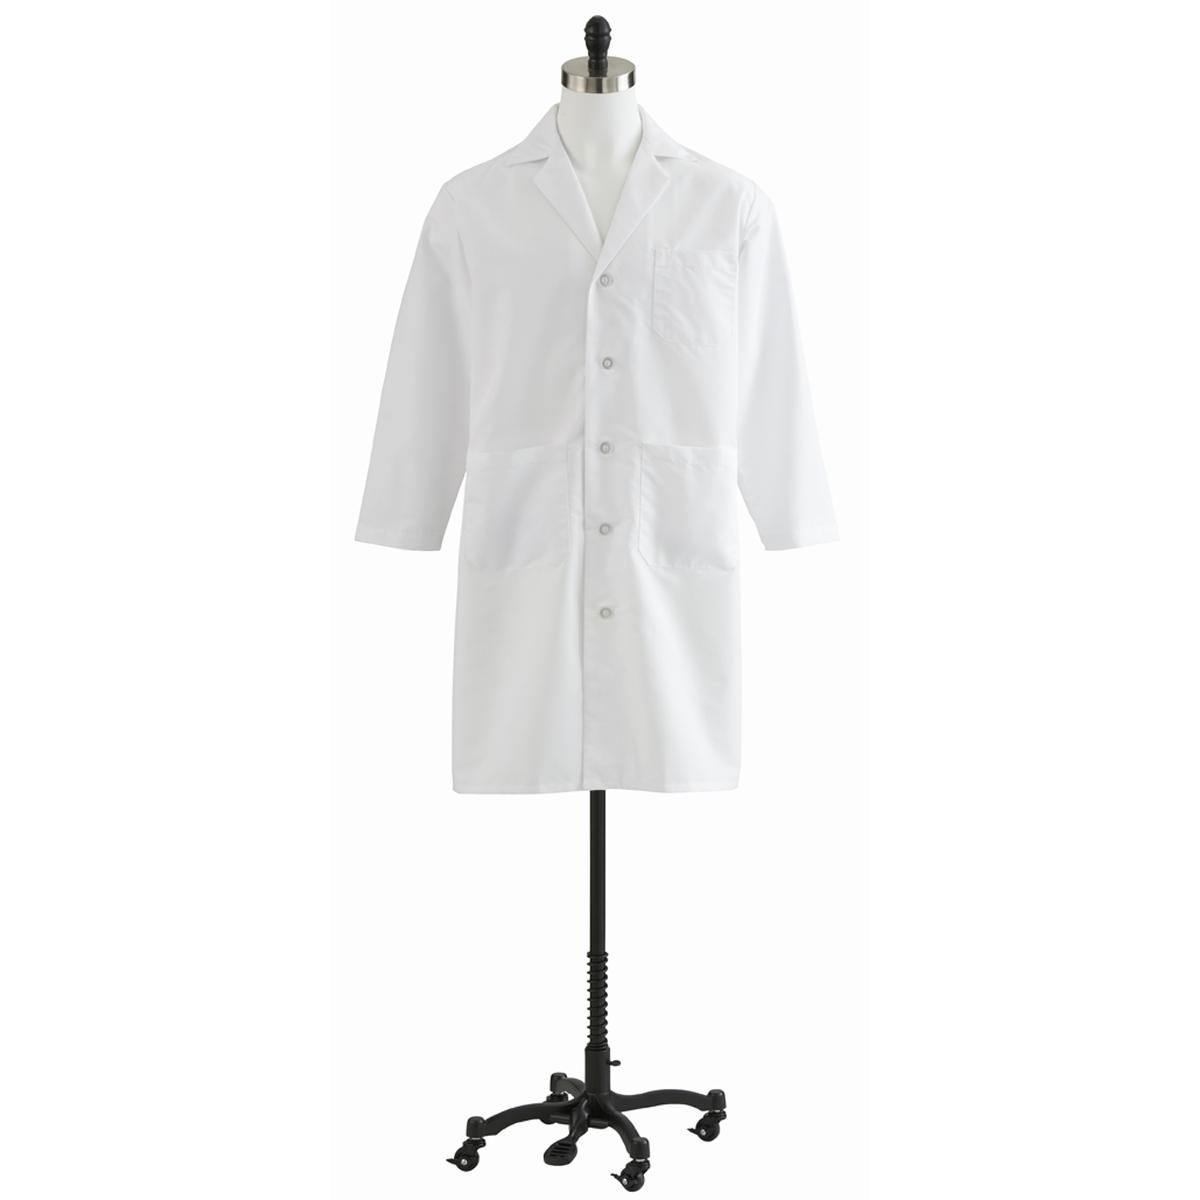 Unisex Full Length Lab Coat-Medline